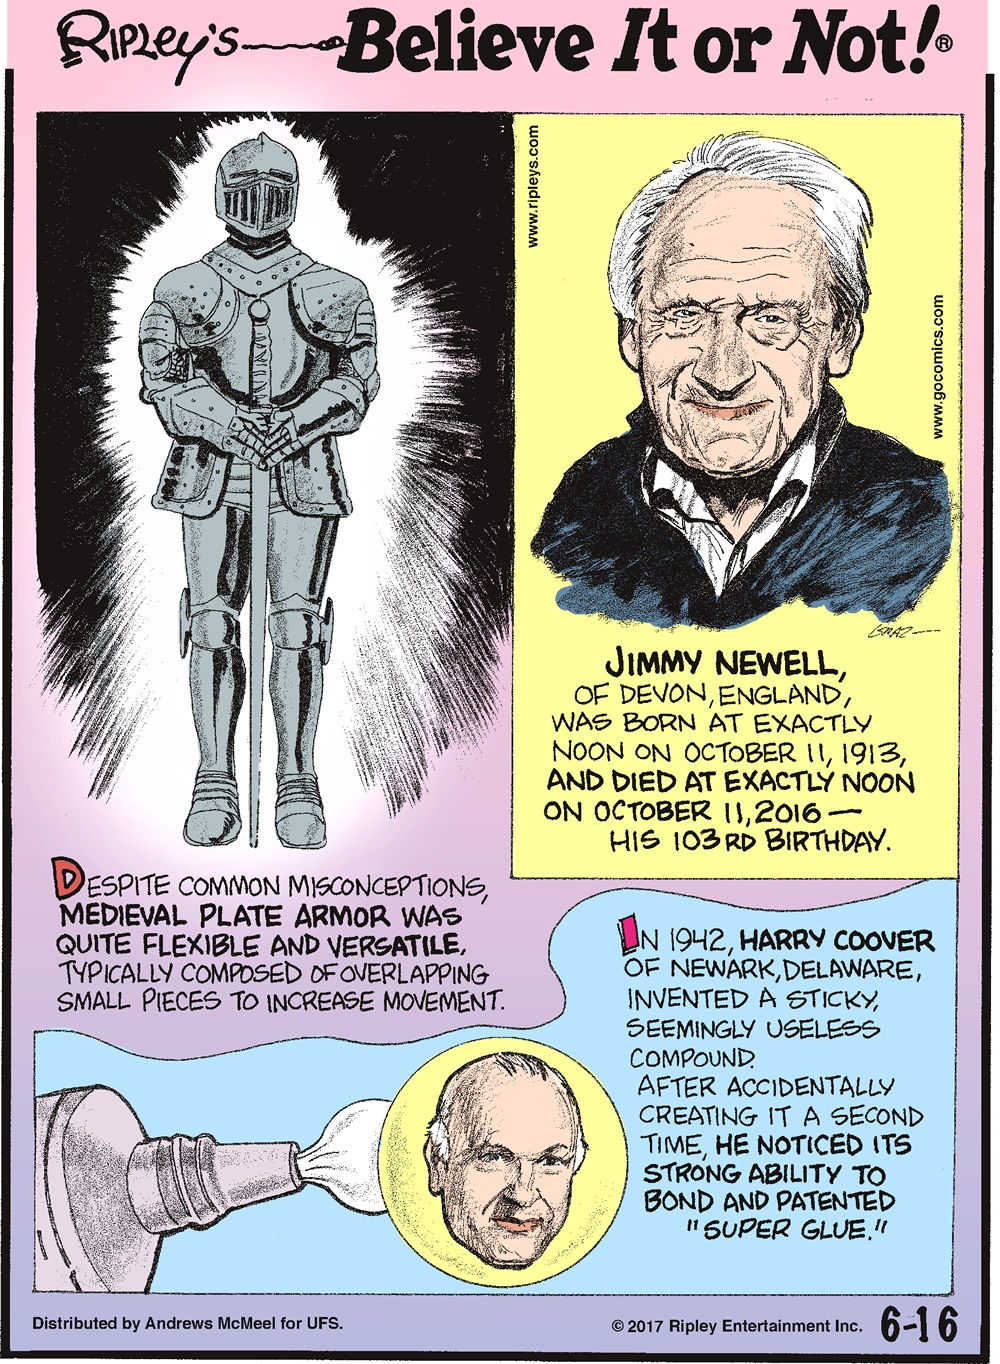 "Despite common misconceptions, medieval plate armor was quite flexible and versatile, typically composed of overlapping small pieces to increase movement.-------------------- Jimmy Newell, of Devon, England, was born at exactly noon on October 11, 1913, and died at exactly noon on October 11, 2016 - his 103rd birthday.--------------------- In 1942, Harry Coover of Newark, Delaware, invented a sticky, seemingly useless compound. After accidentally creating it a second time, he noticed its strong ability to bond and patented ""Super Glue."""